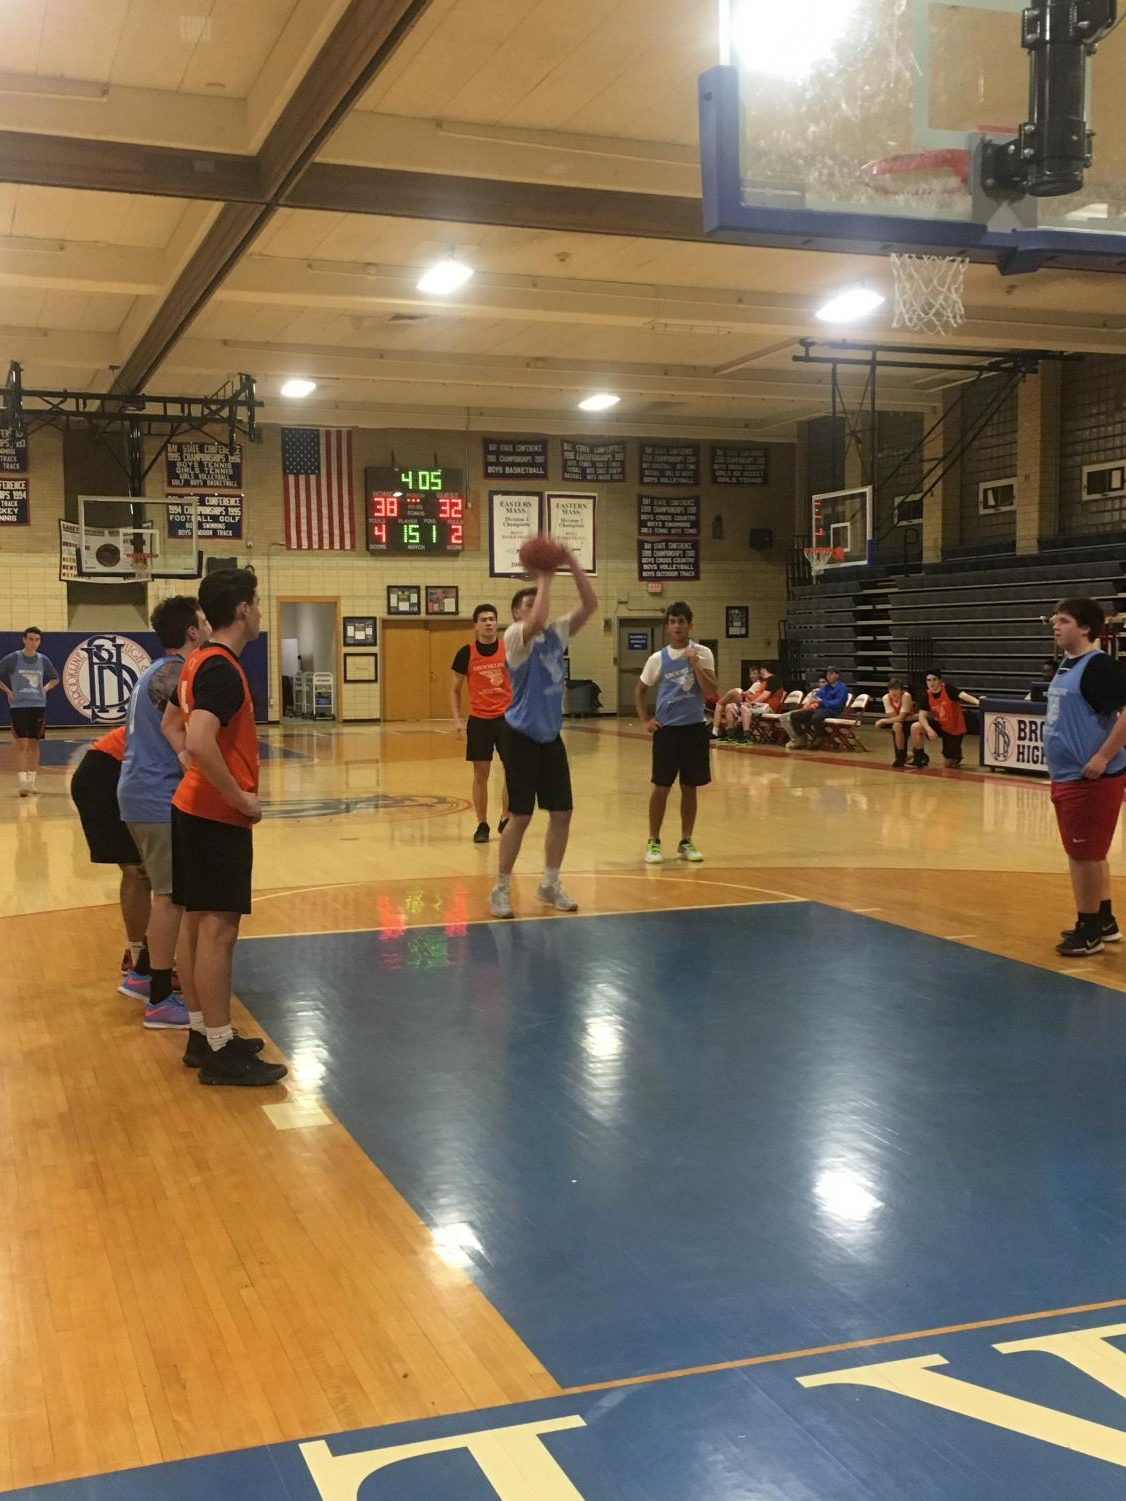 Senior Peter Montgomery takes a free throw for the University of North Carolina in the 2018 Brookline Recreational Basketball Final. UNC played against University of Florida in the final.